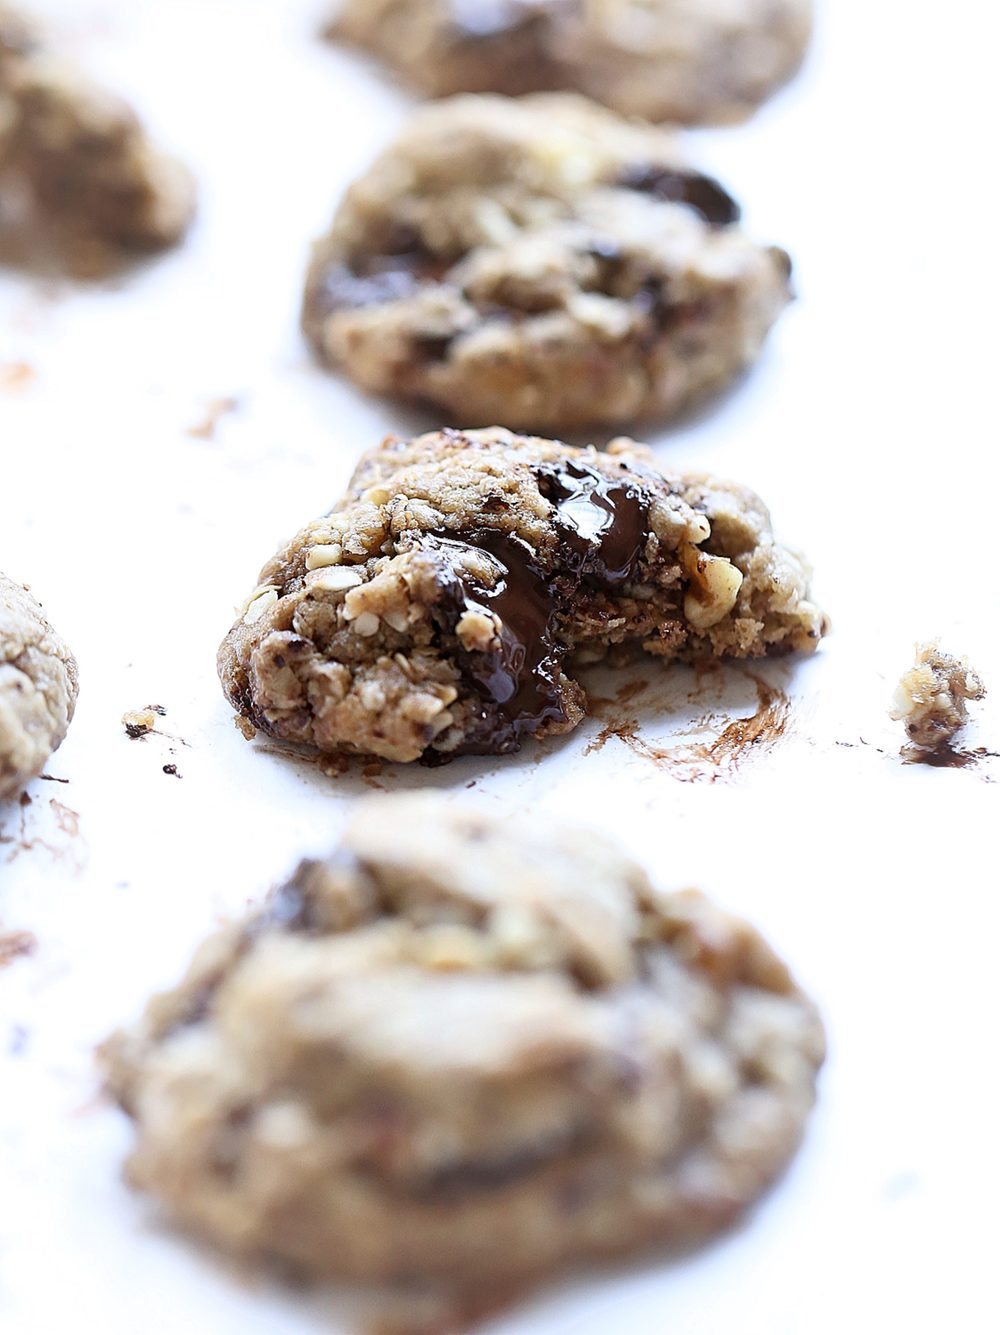 Loaded No-Butter Chocolate Chip Cookies: soft, rich, thick coconut oil cookies packed with chocolate chips, oats, coconut, and nuts. So easy and good! | TrufflesandTrends.com